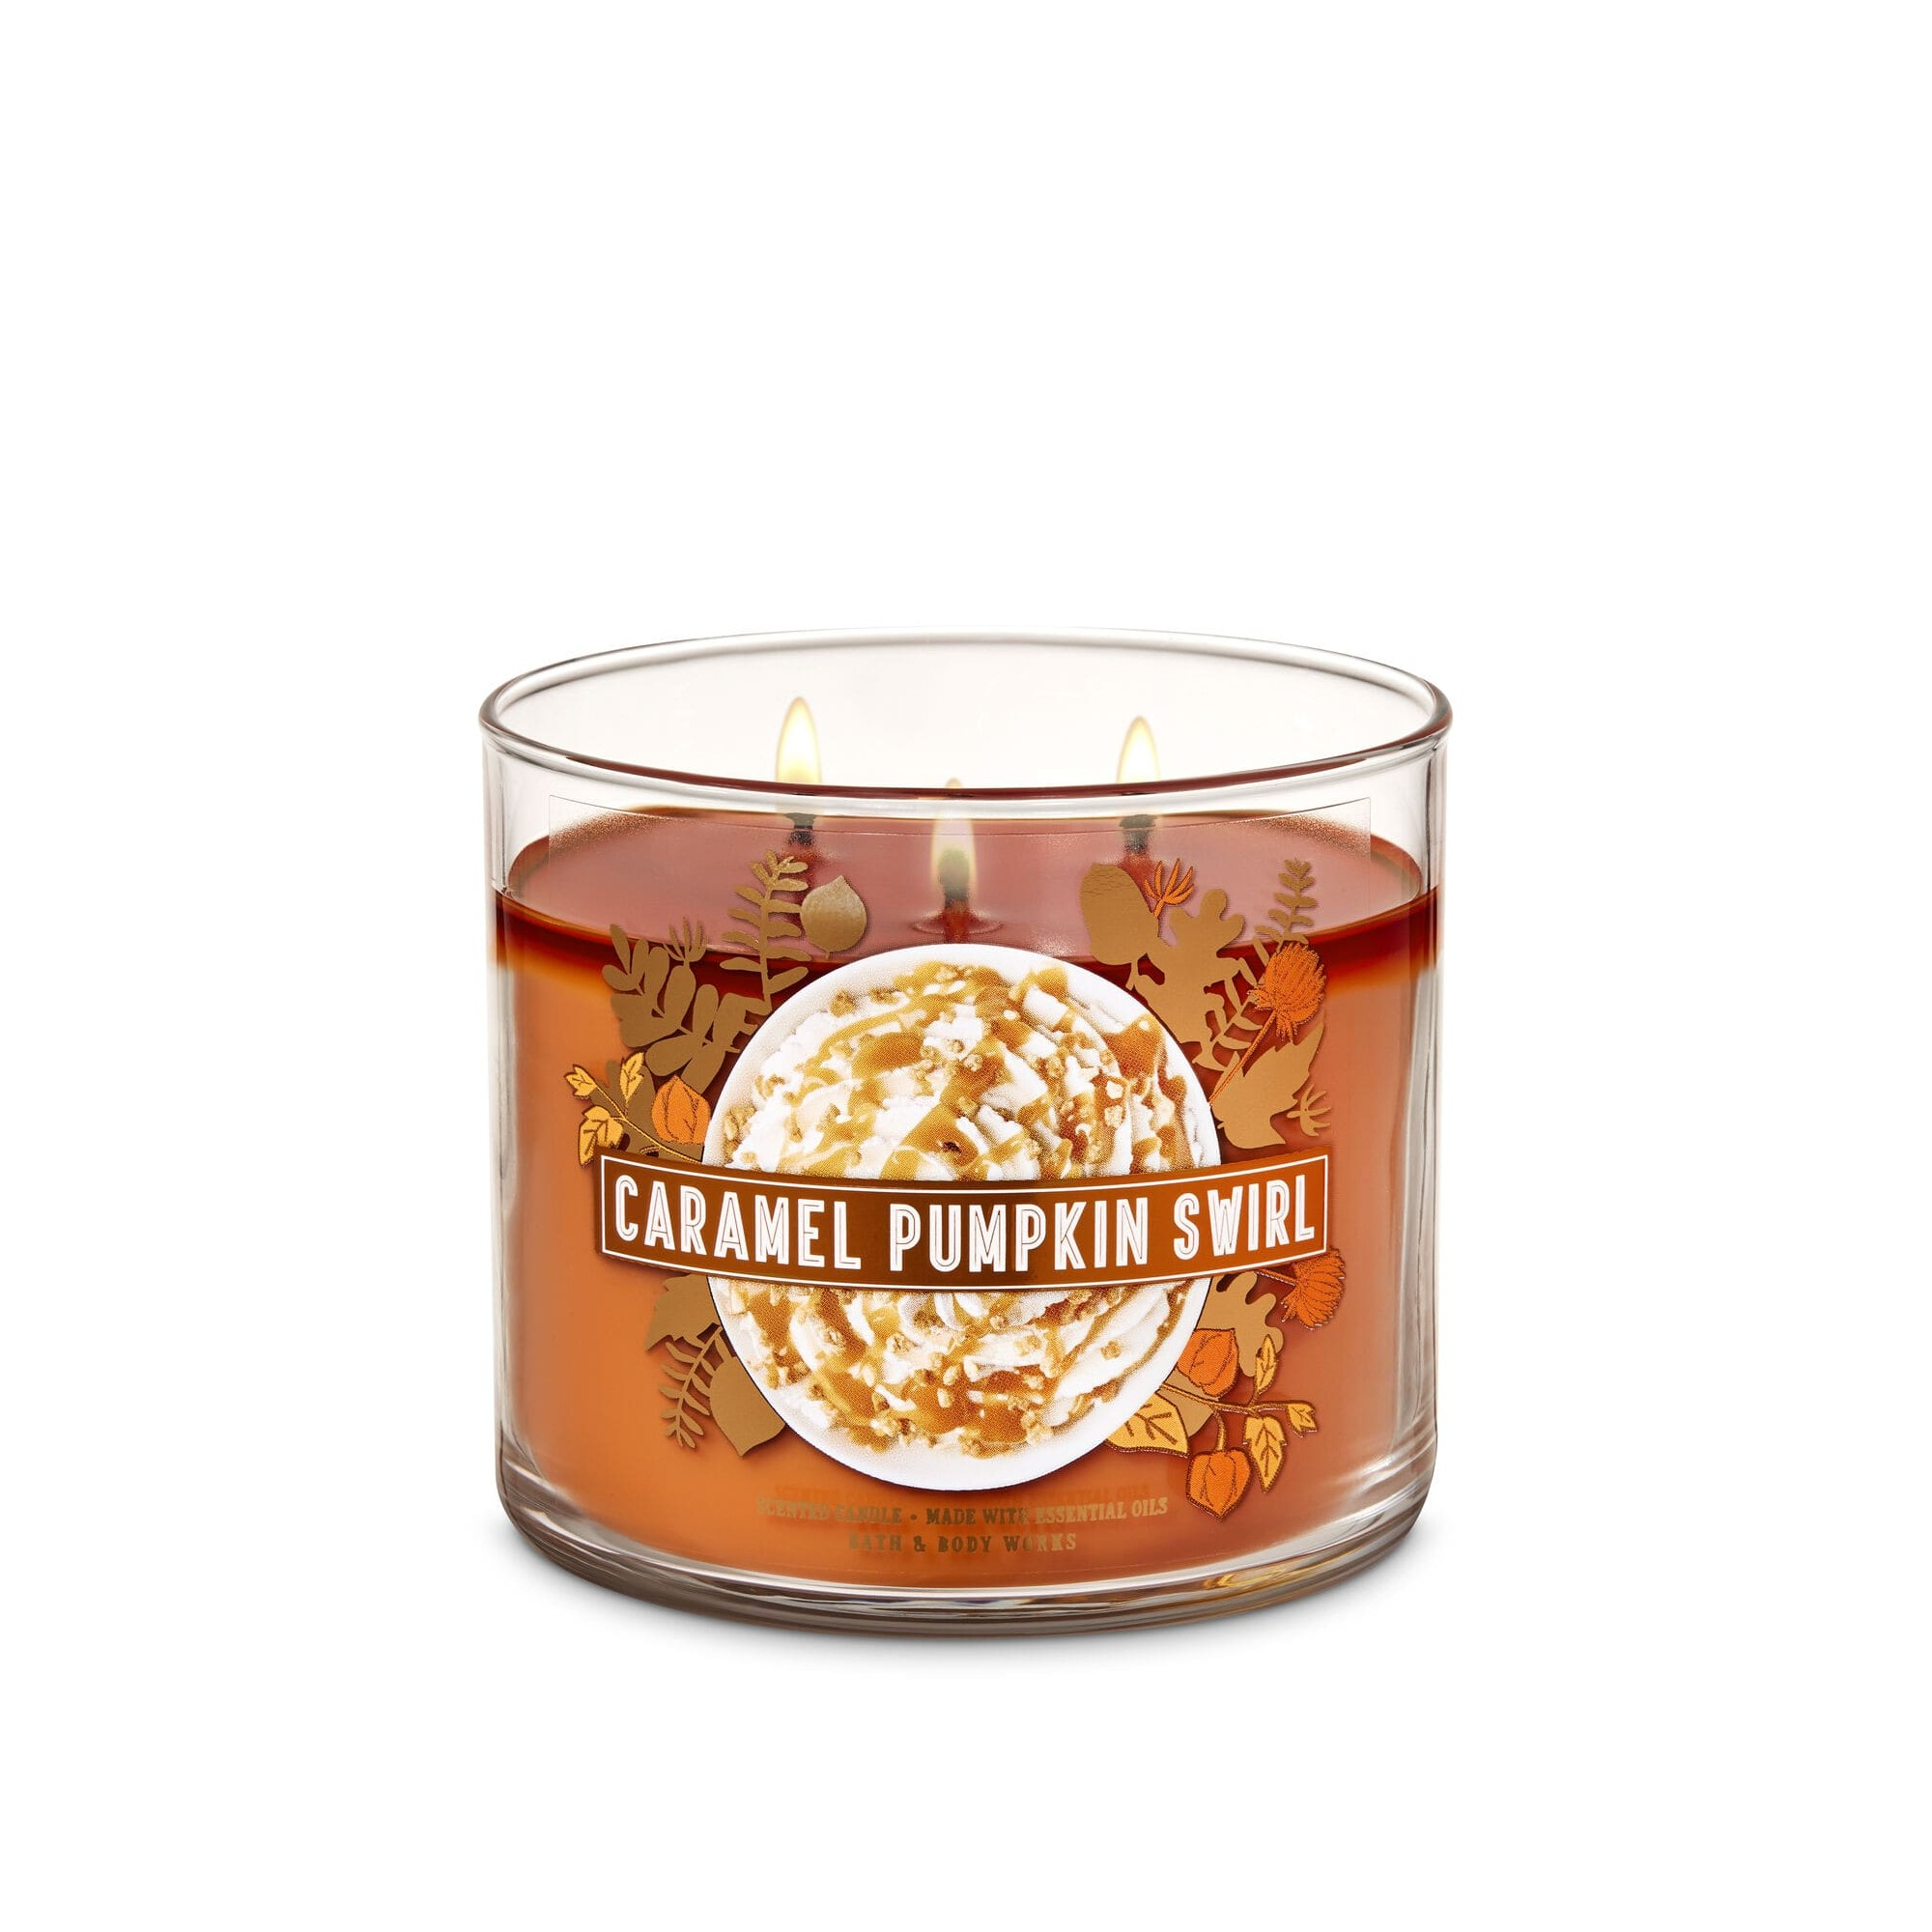 Bath & Body Works Caramel Pumpkin Swirl 3 Wick Scented Candle